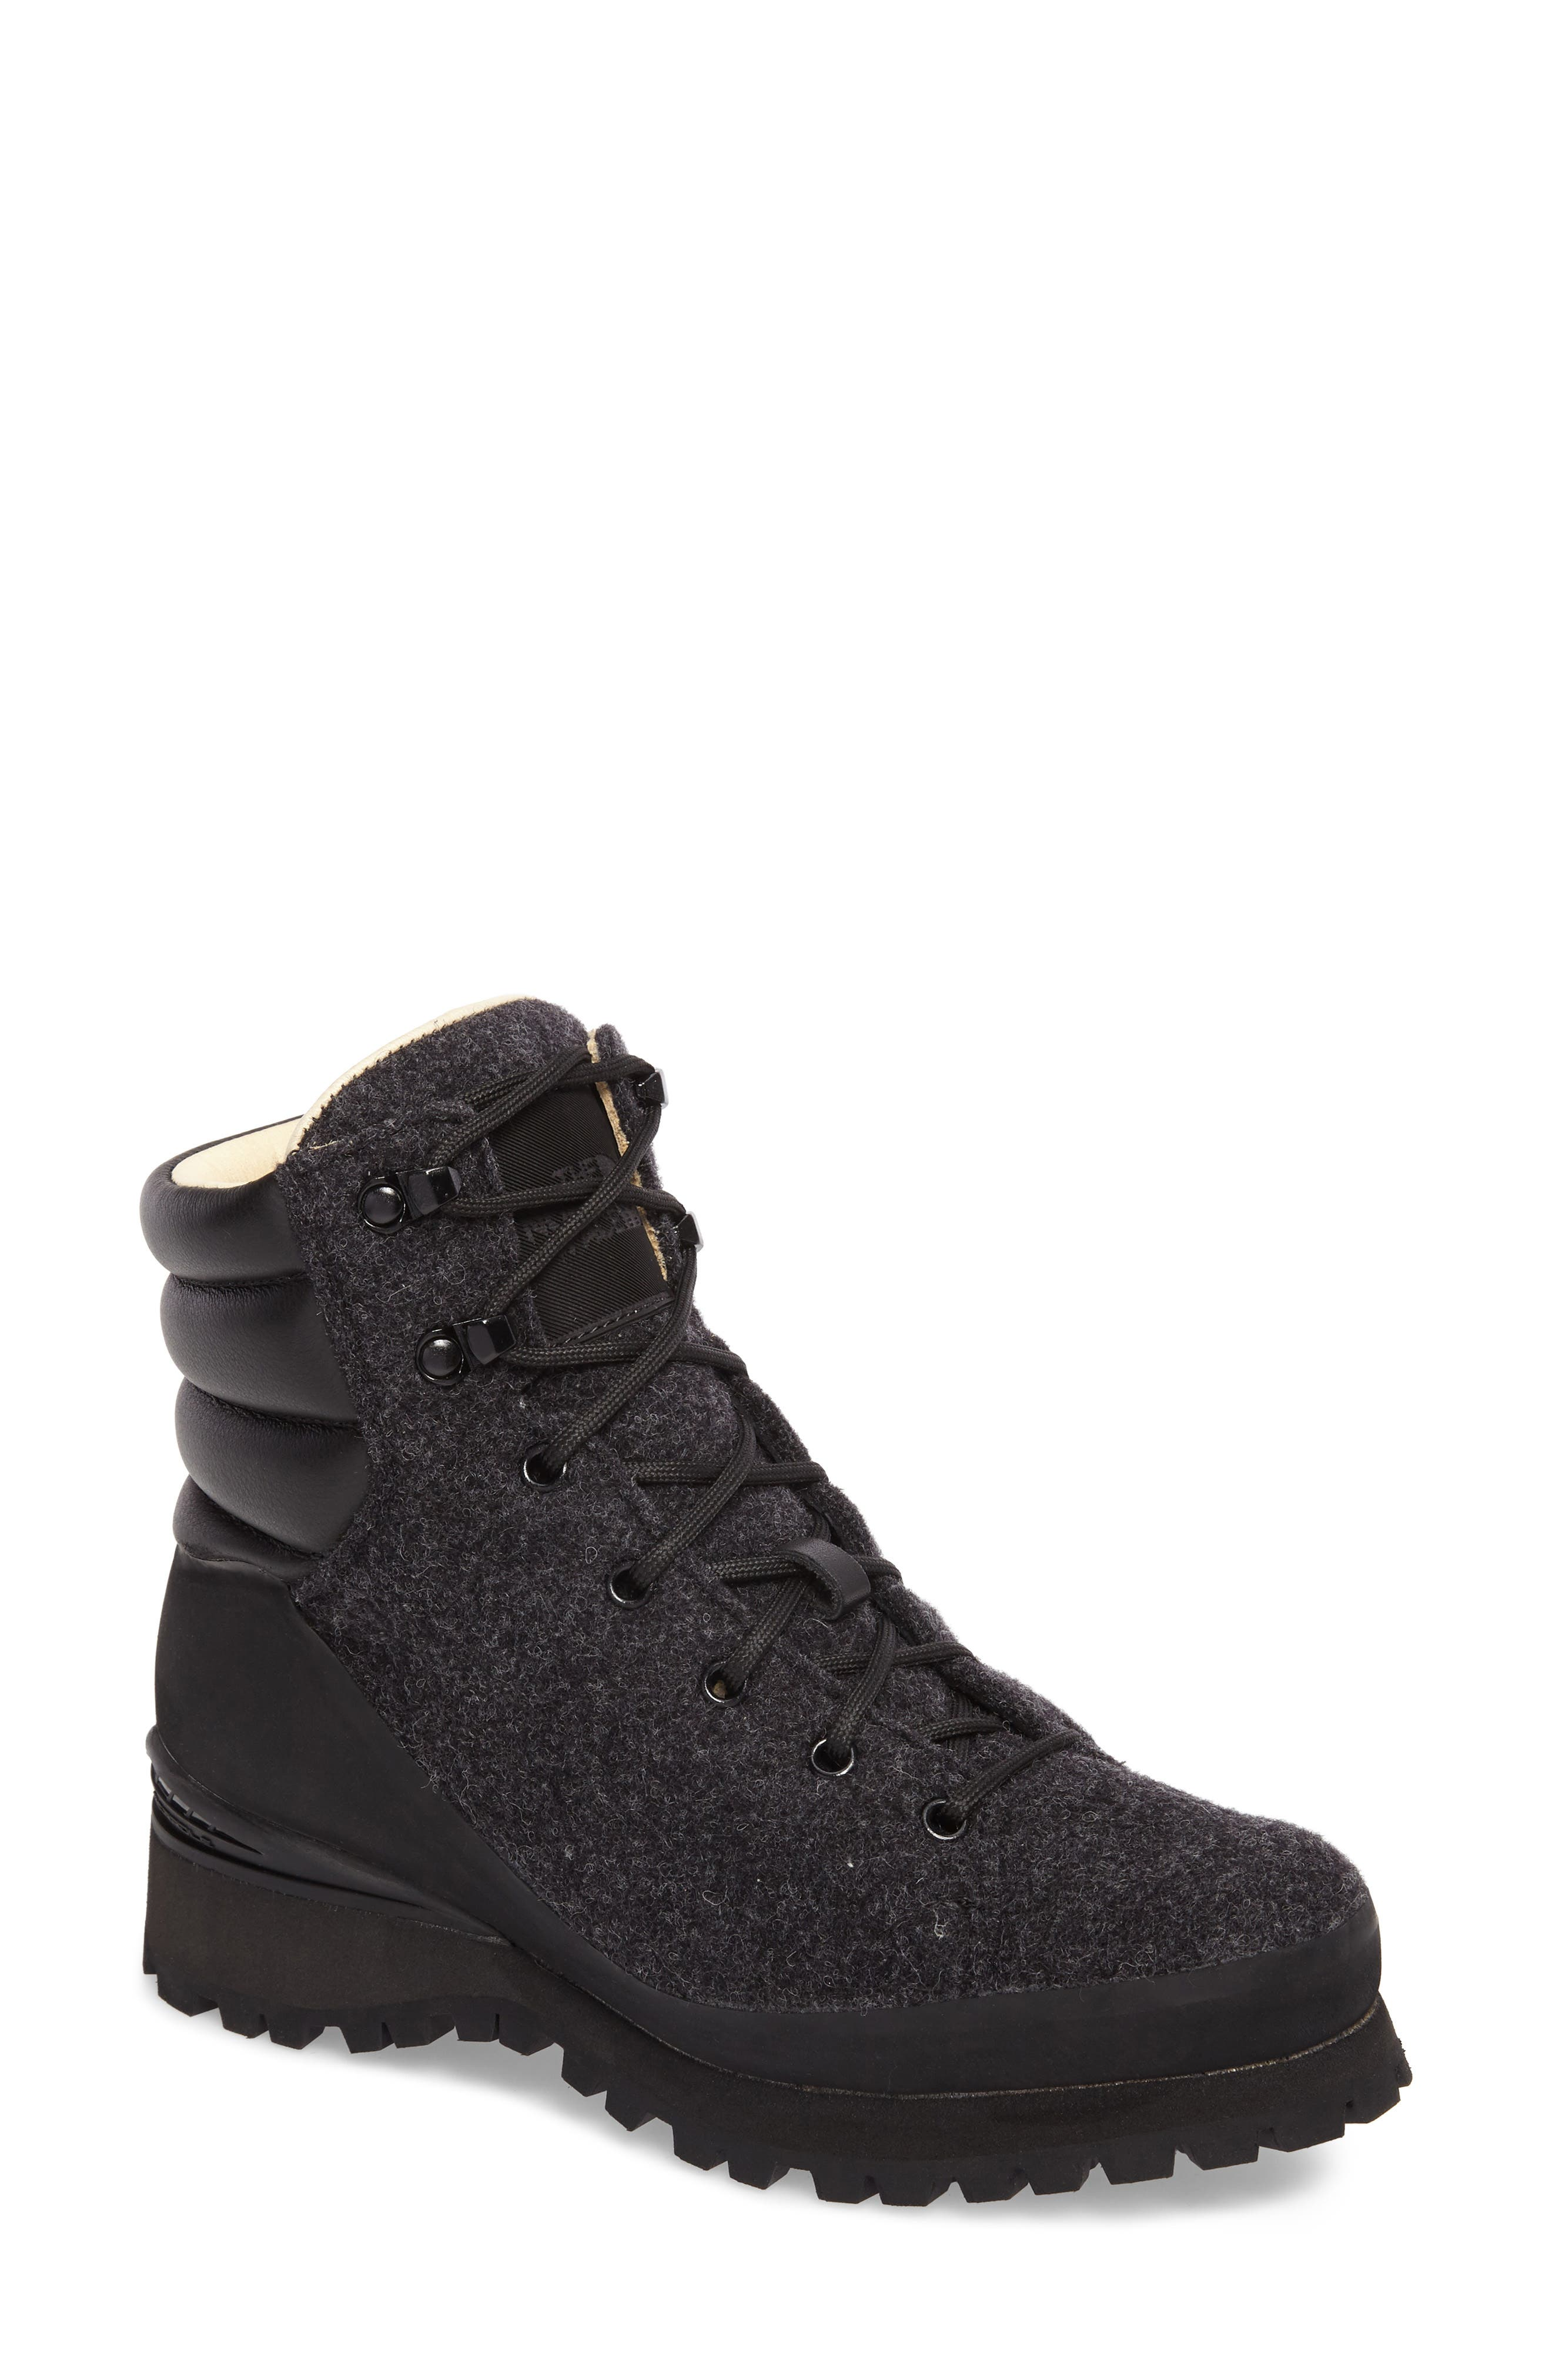 Cryos Hiker Boot,                             Main thumbnail 1, color,                             Tnf Black/ Tnf Black